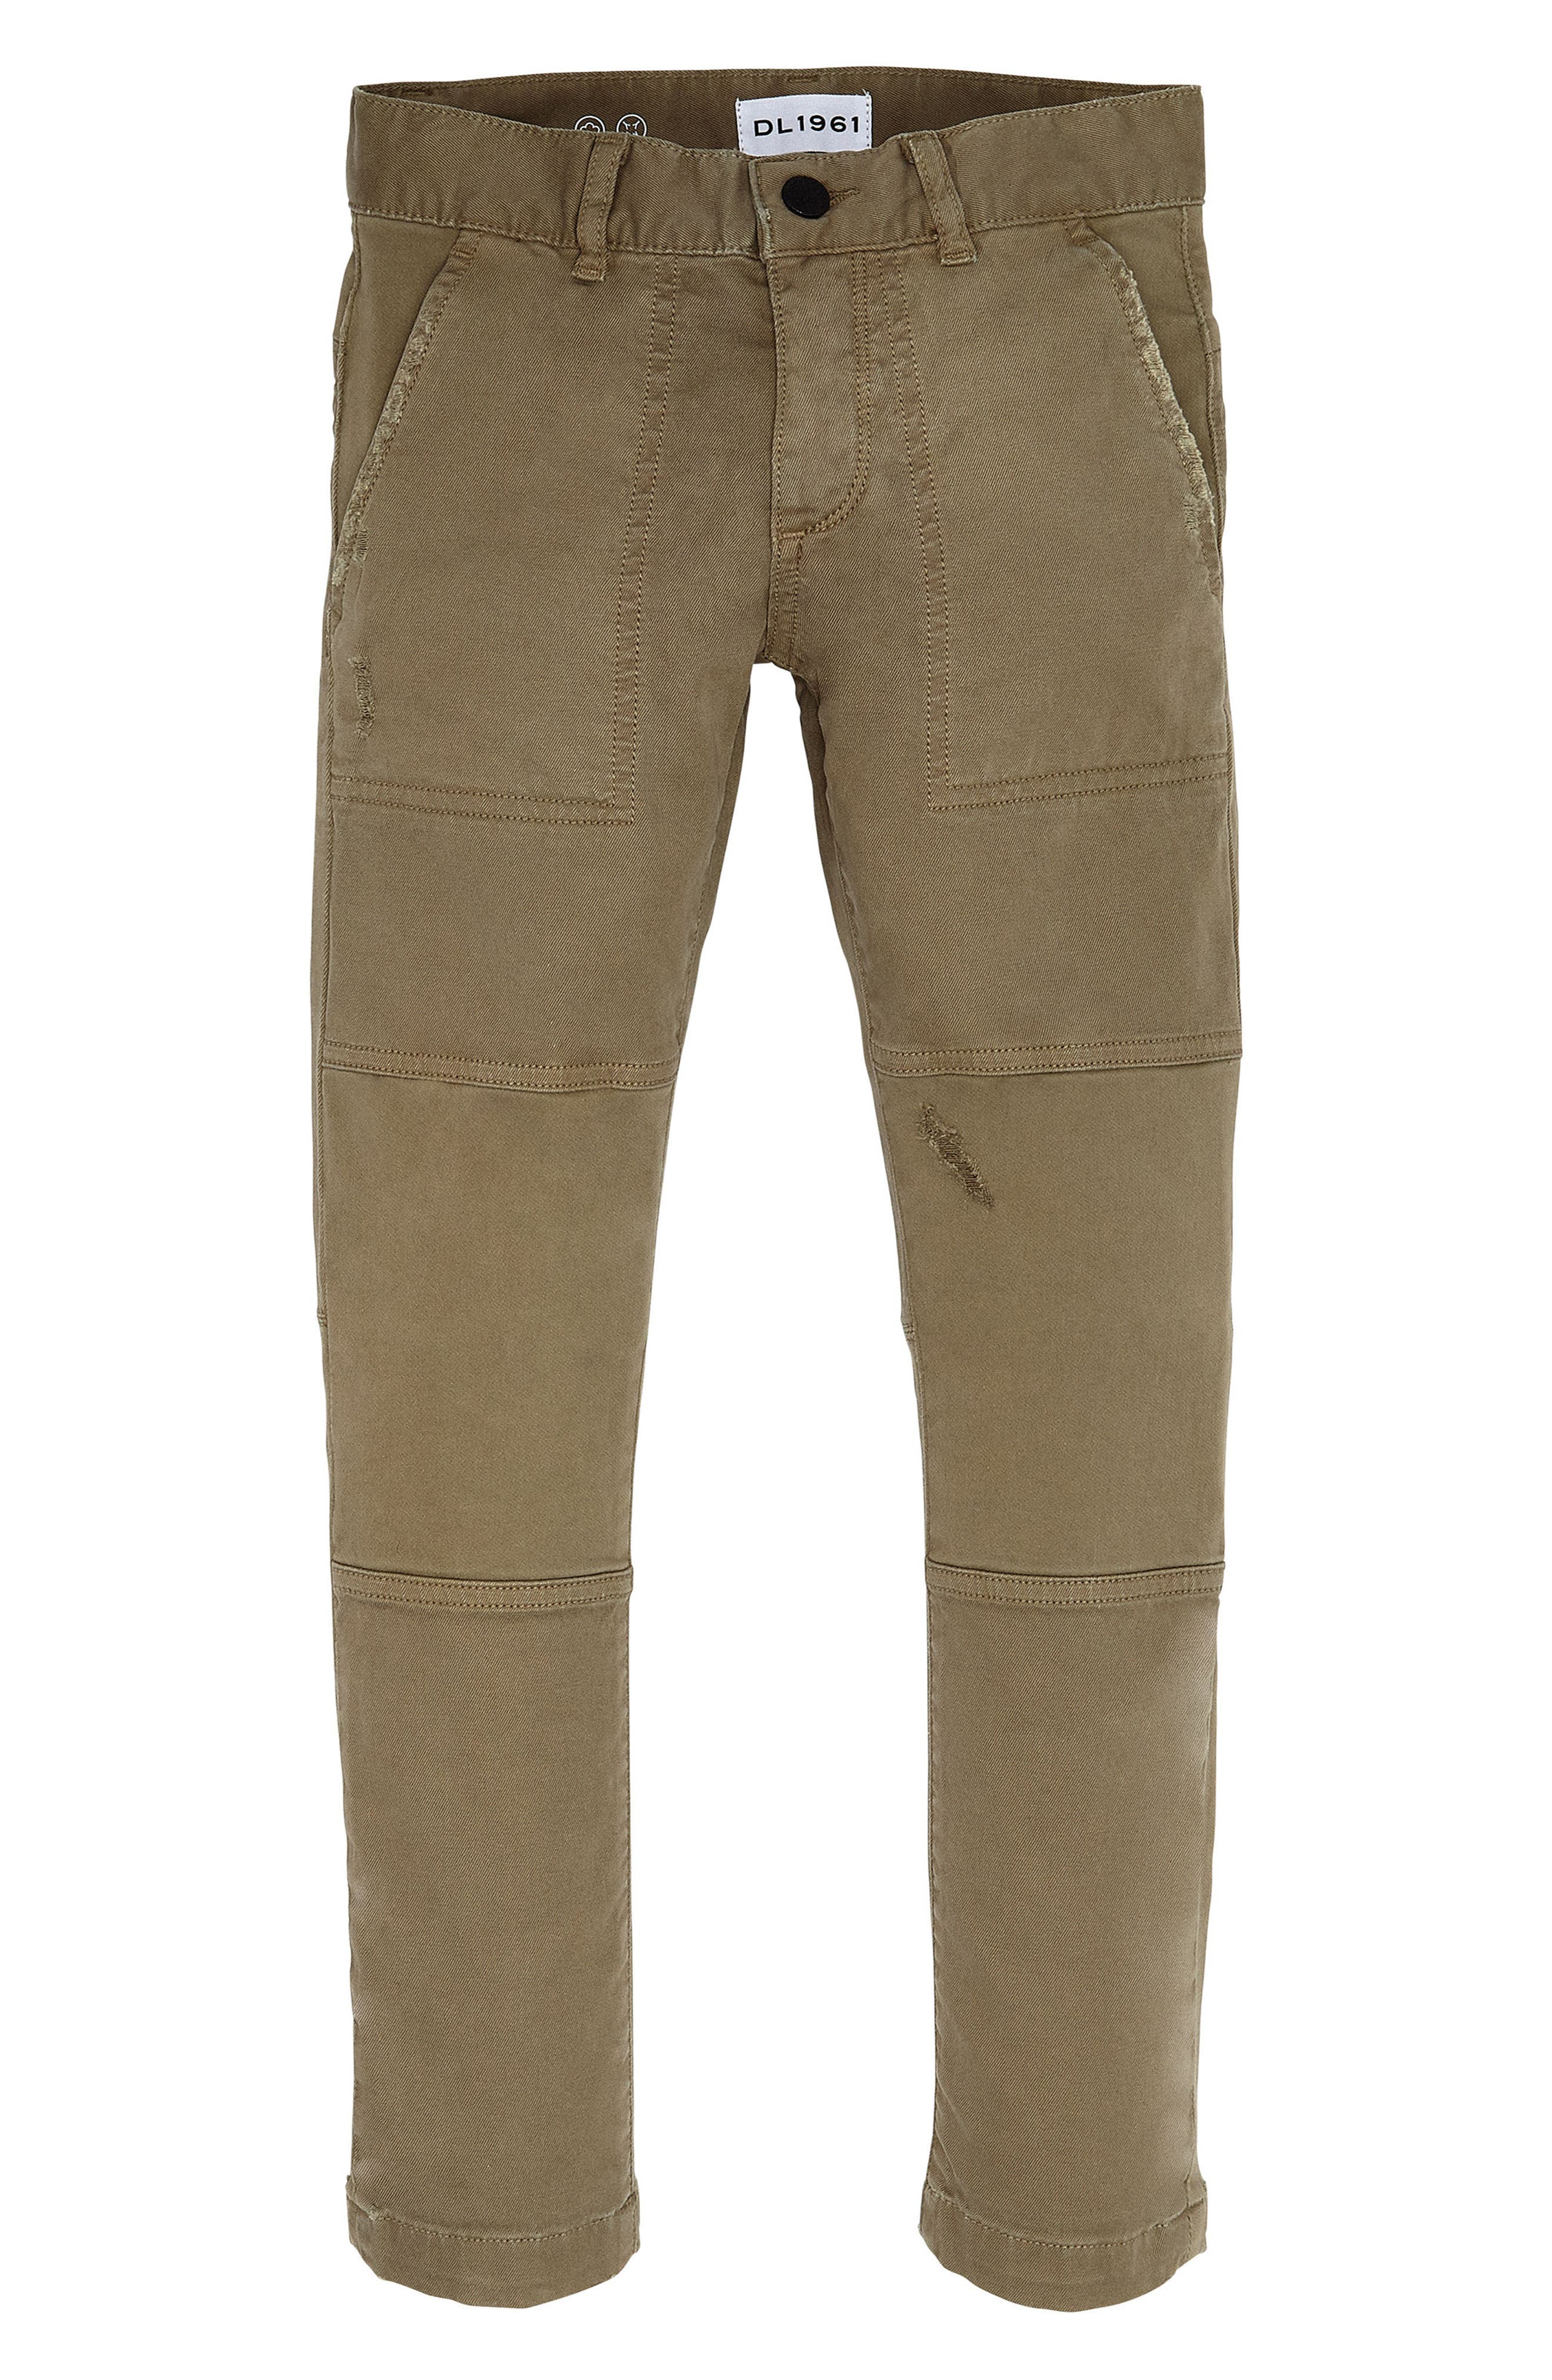 Hawke Skinny Fit Utility Jeans,                         Main,                         color, 370